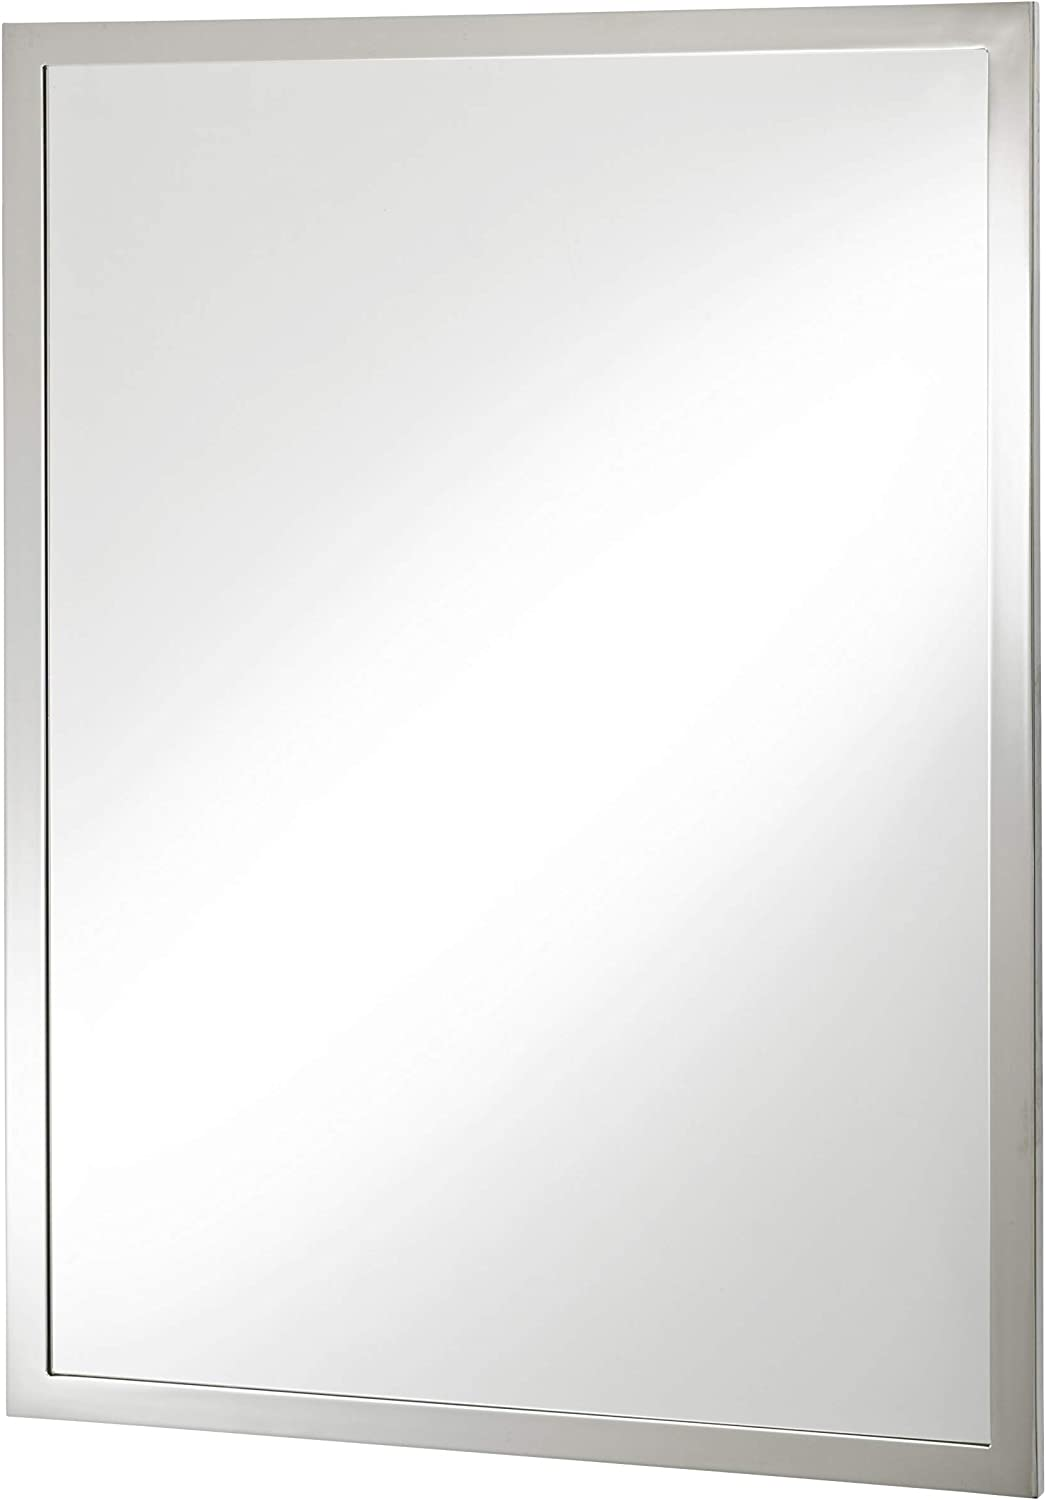 23 2 3 X 31 1 Beauty products Nickel WALL FIXED Bombing new work Polished MIRROR